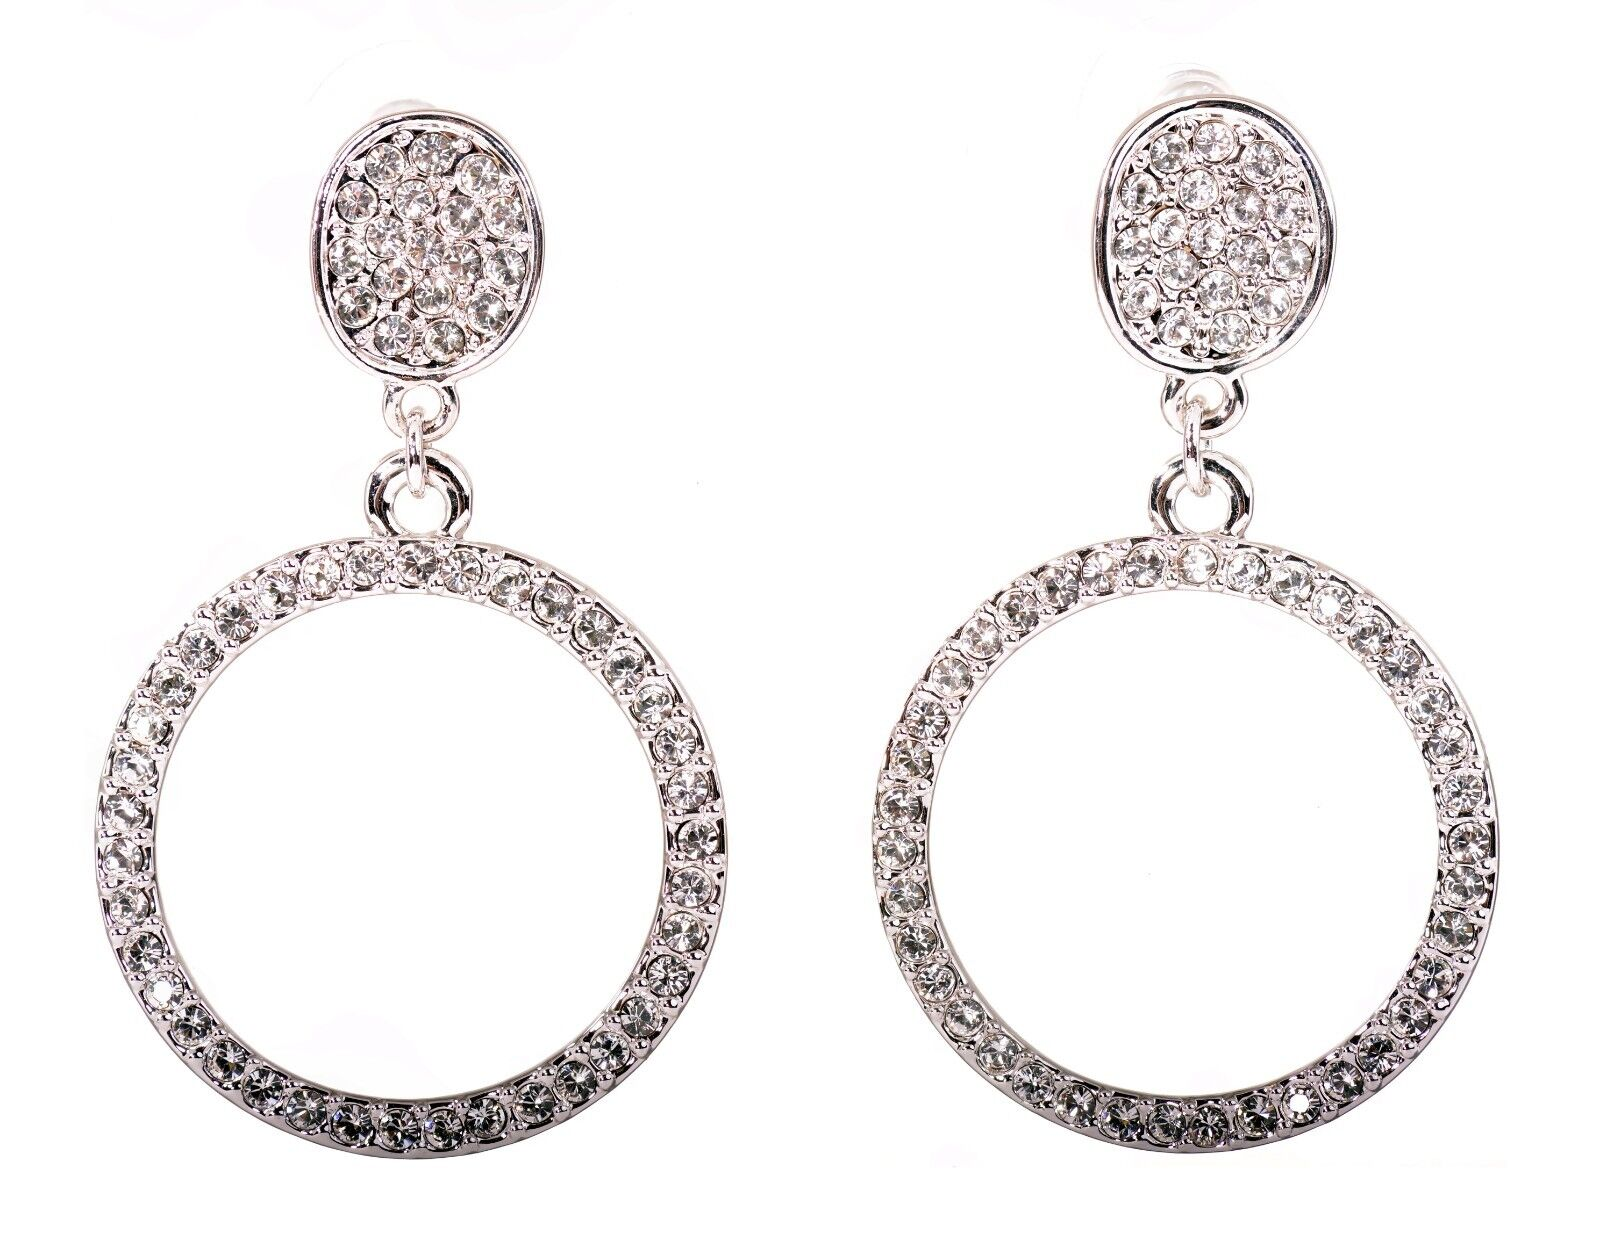 Swarovski Element Crystal Circle Drop Earrings Rhodium Plated Authentic 7959z